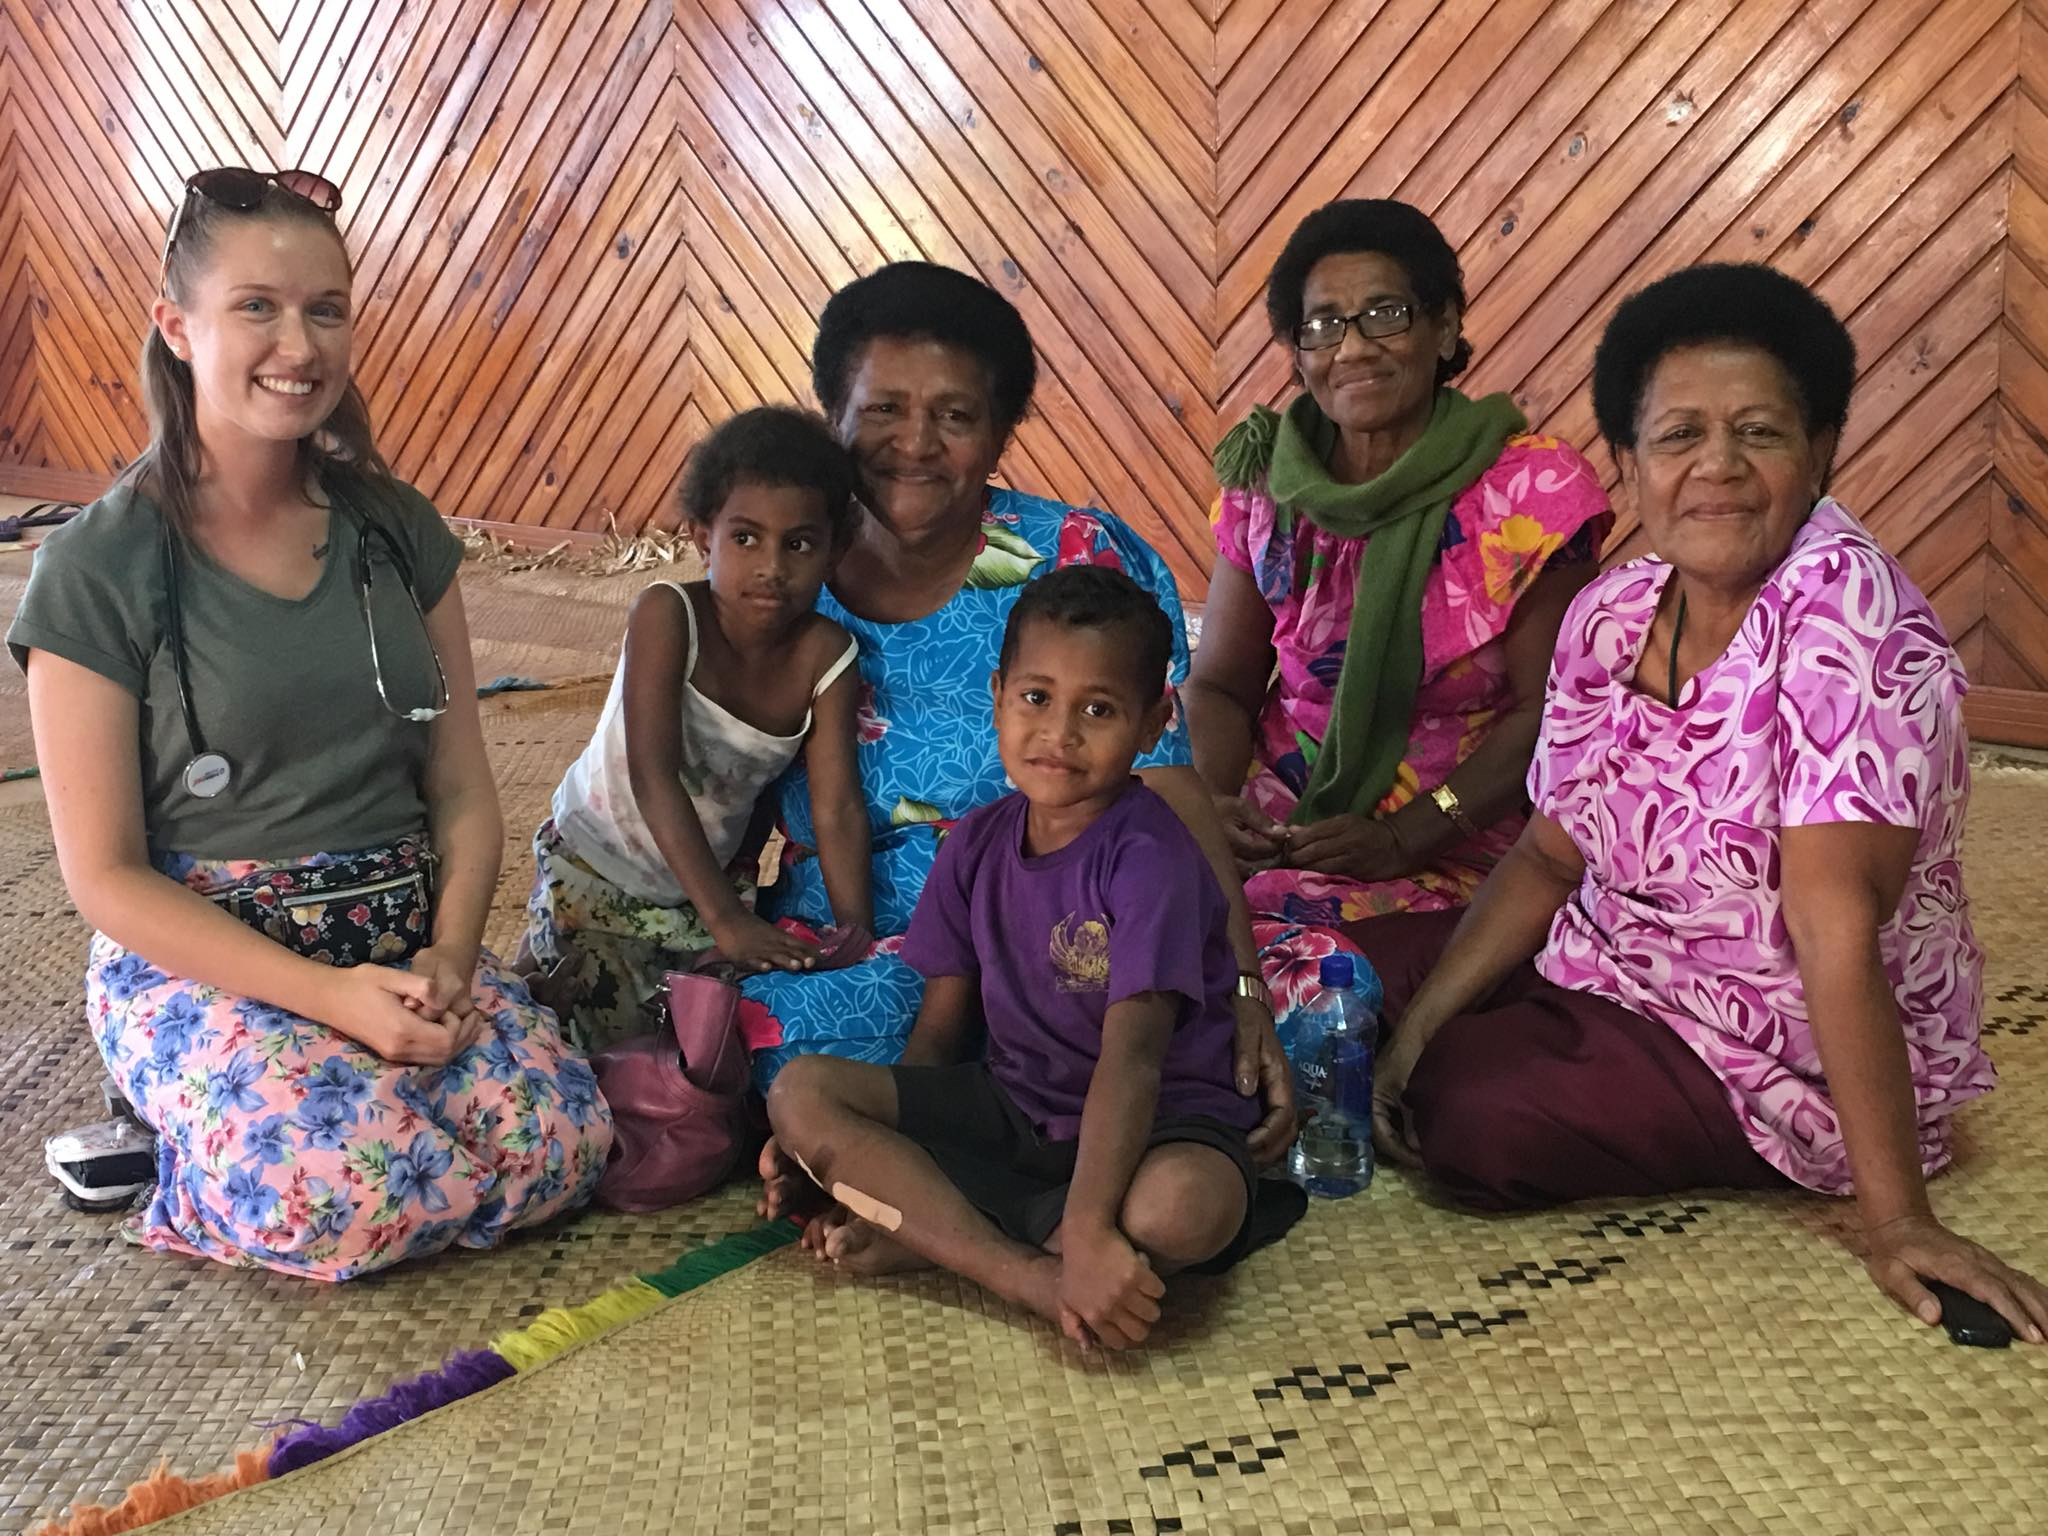 lovely shot with volunteer health worker and fijian woman and children - IVI Doing Health Checks in 5* Fiji Resorts